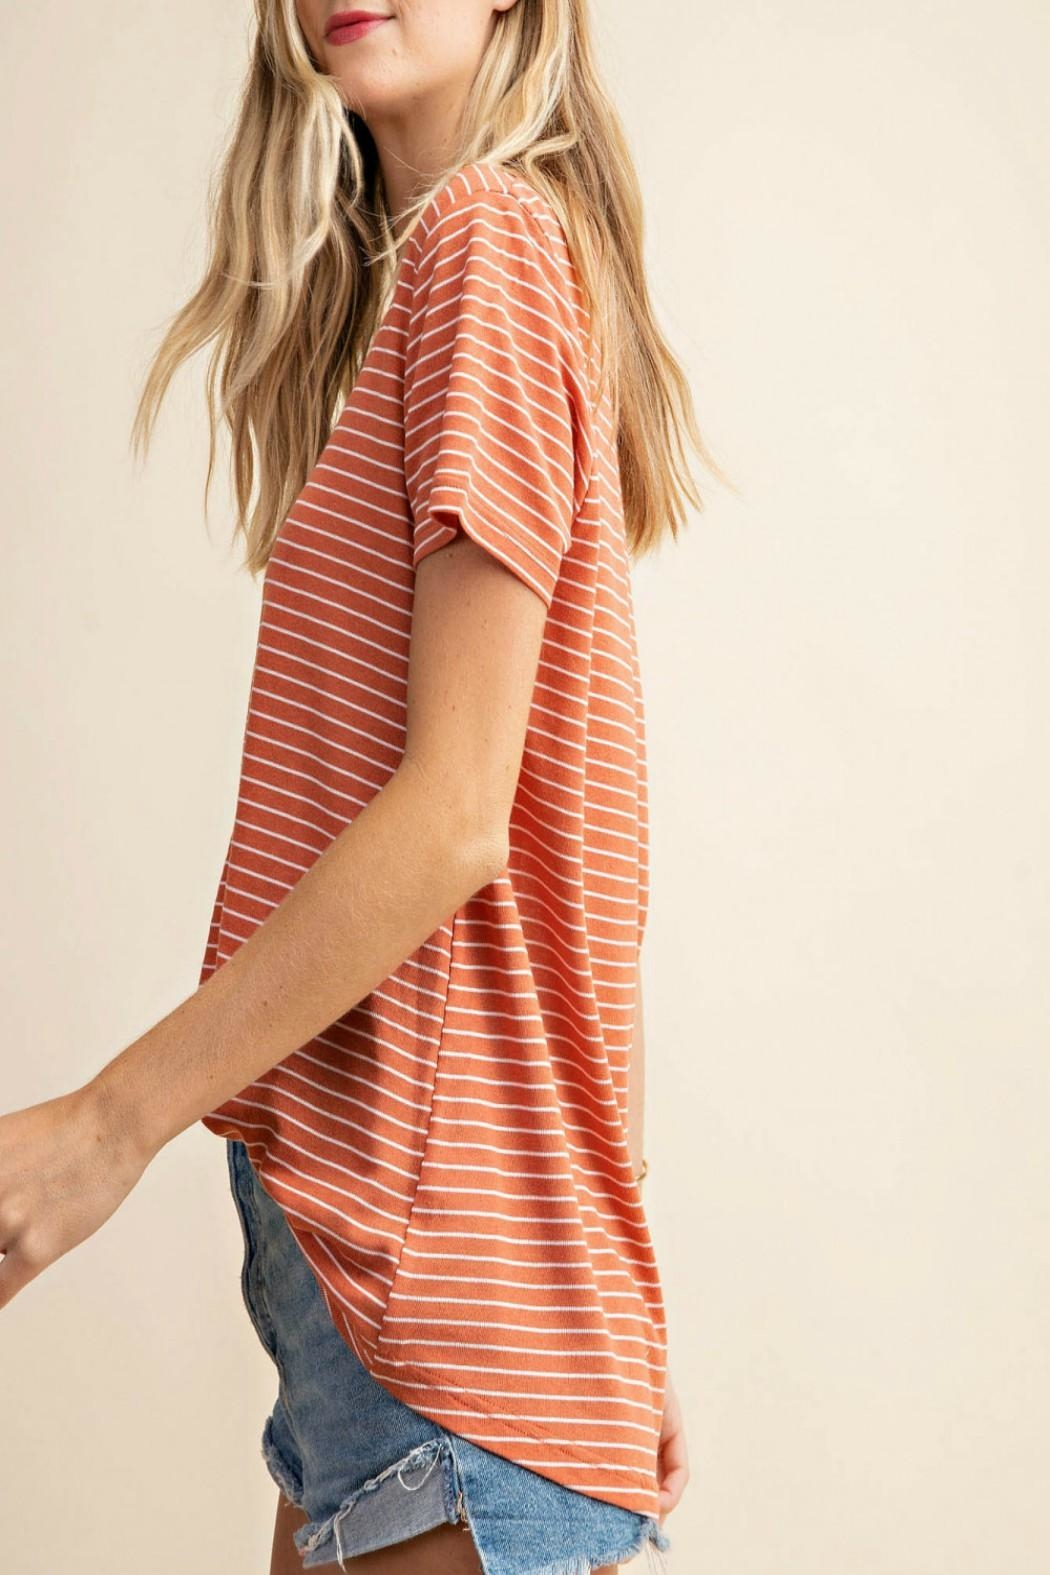 KORI AMERICA V-Neck Striped Top - Side Cropped Image